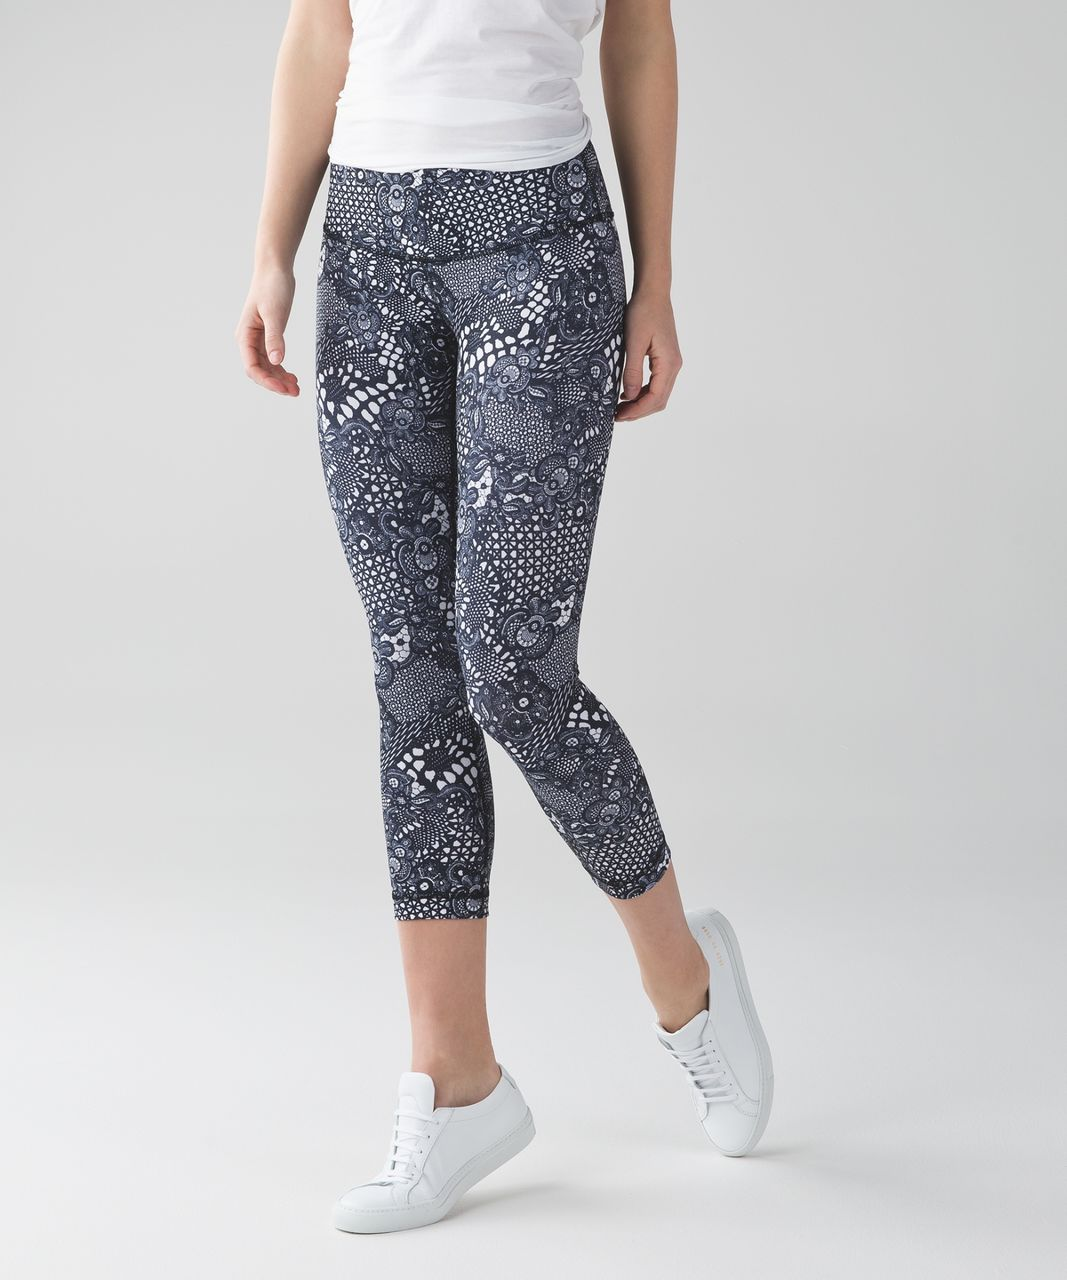 Lululemon Wunder Under Crop III - Pretty Lace White Black